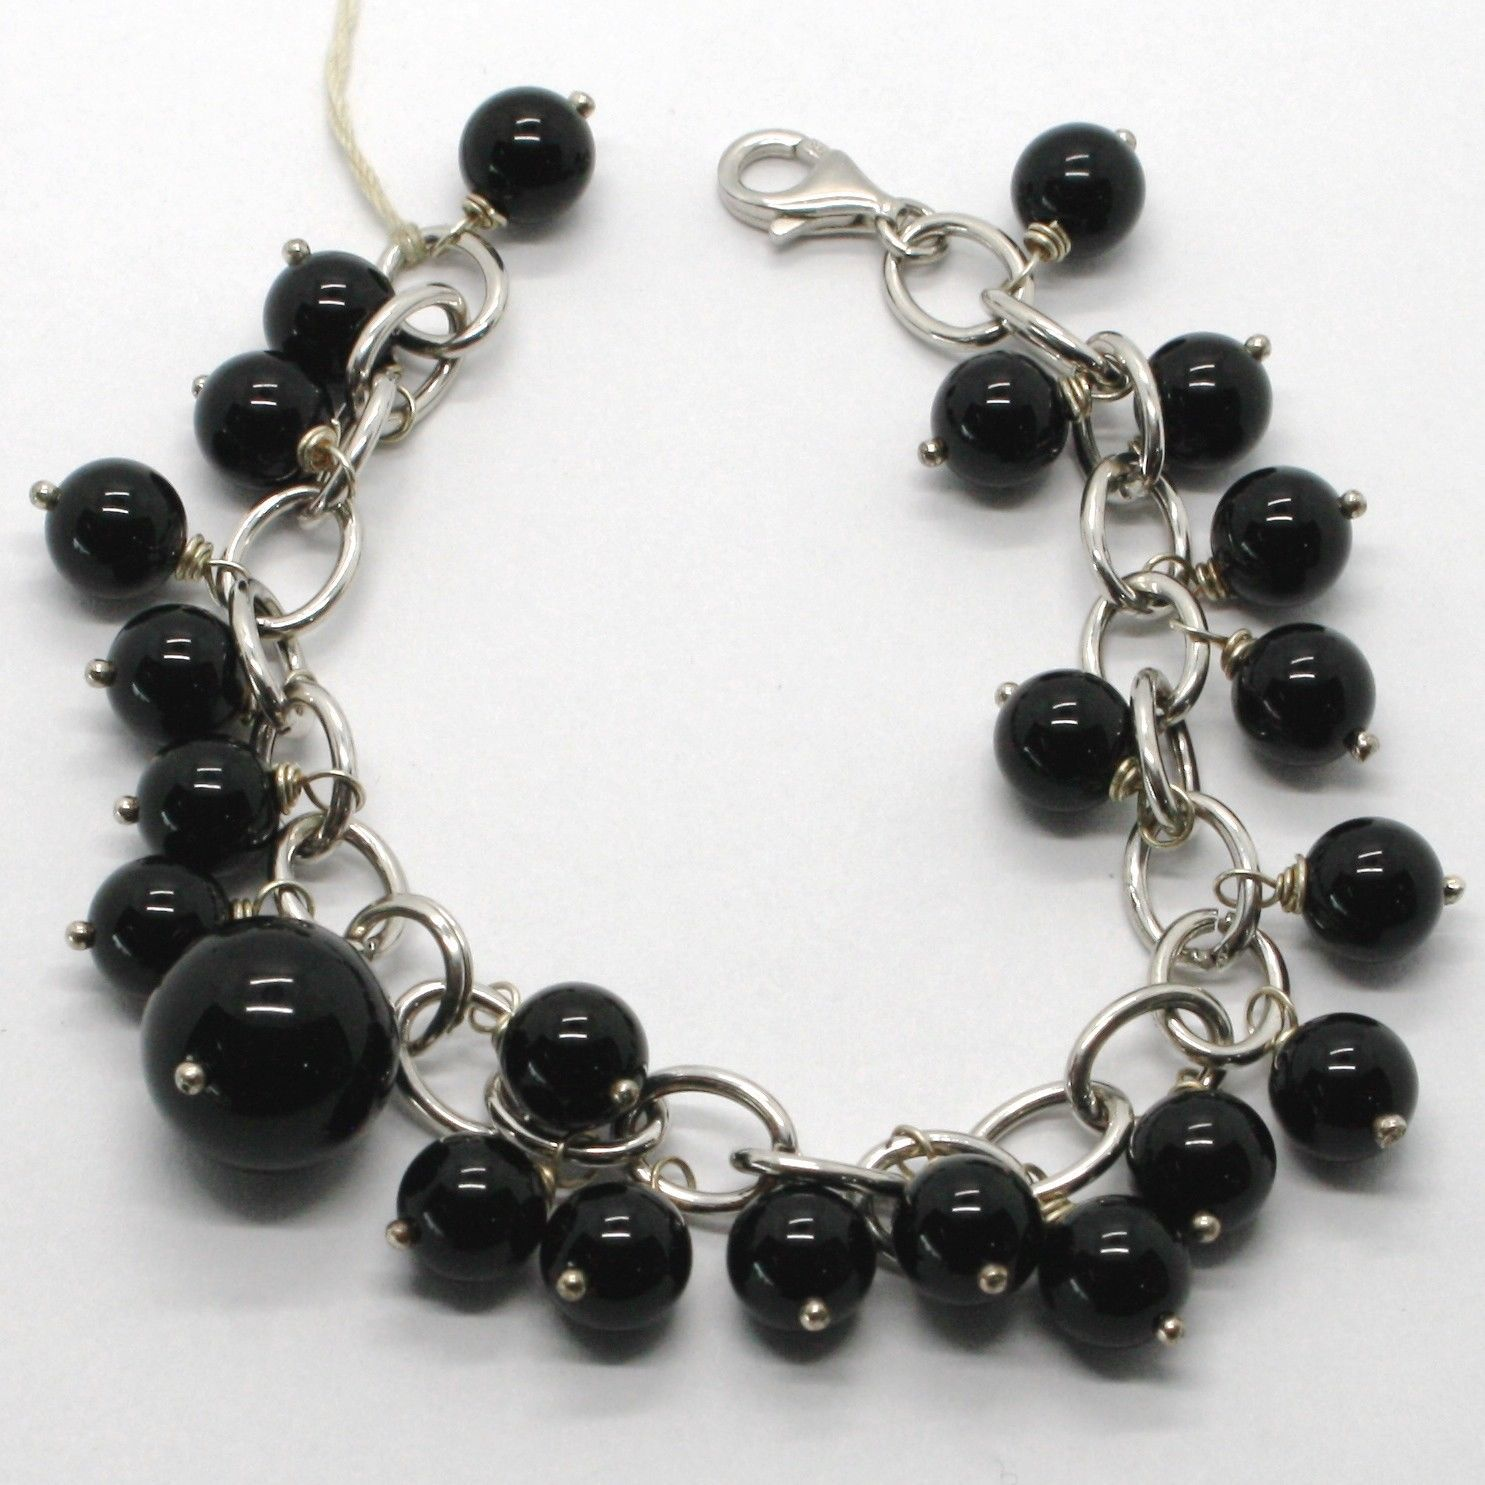 925 STERLING SILVER BRACELET WITH BIG BLACK ONYX SPHERE BALL PENDANT, CHARMS